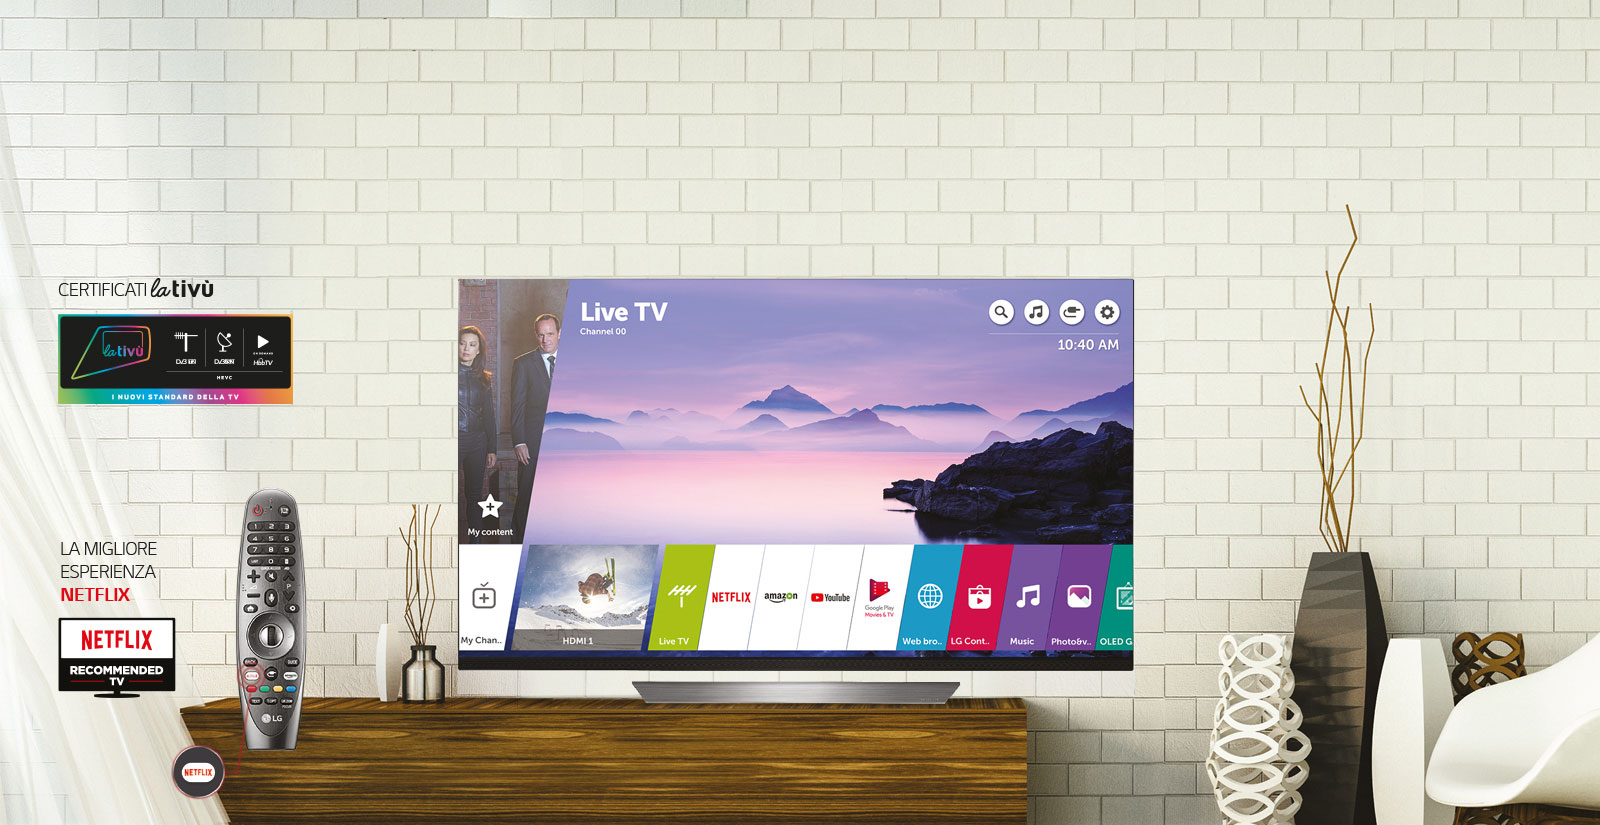 fascia_video_smart_tv_OLED_09072018_d